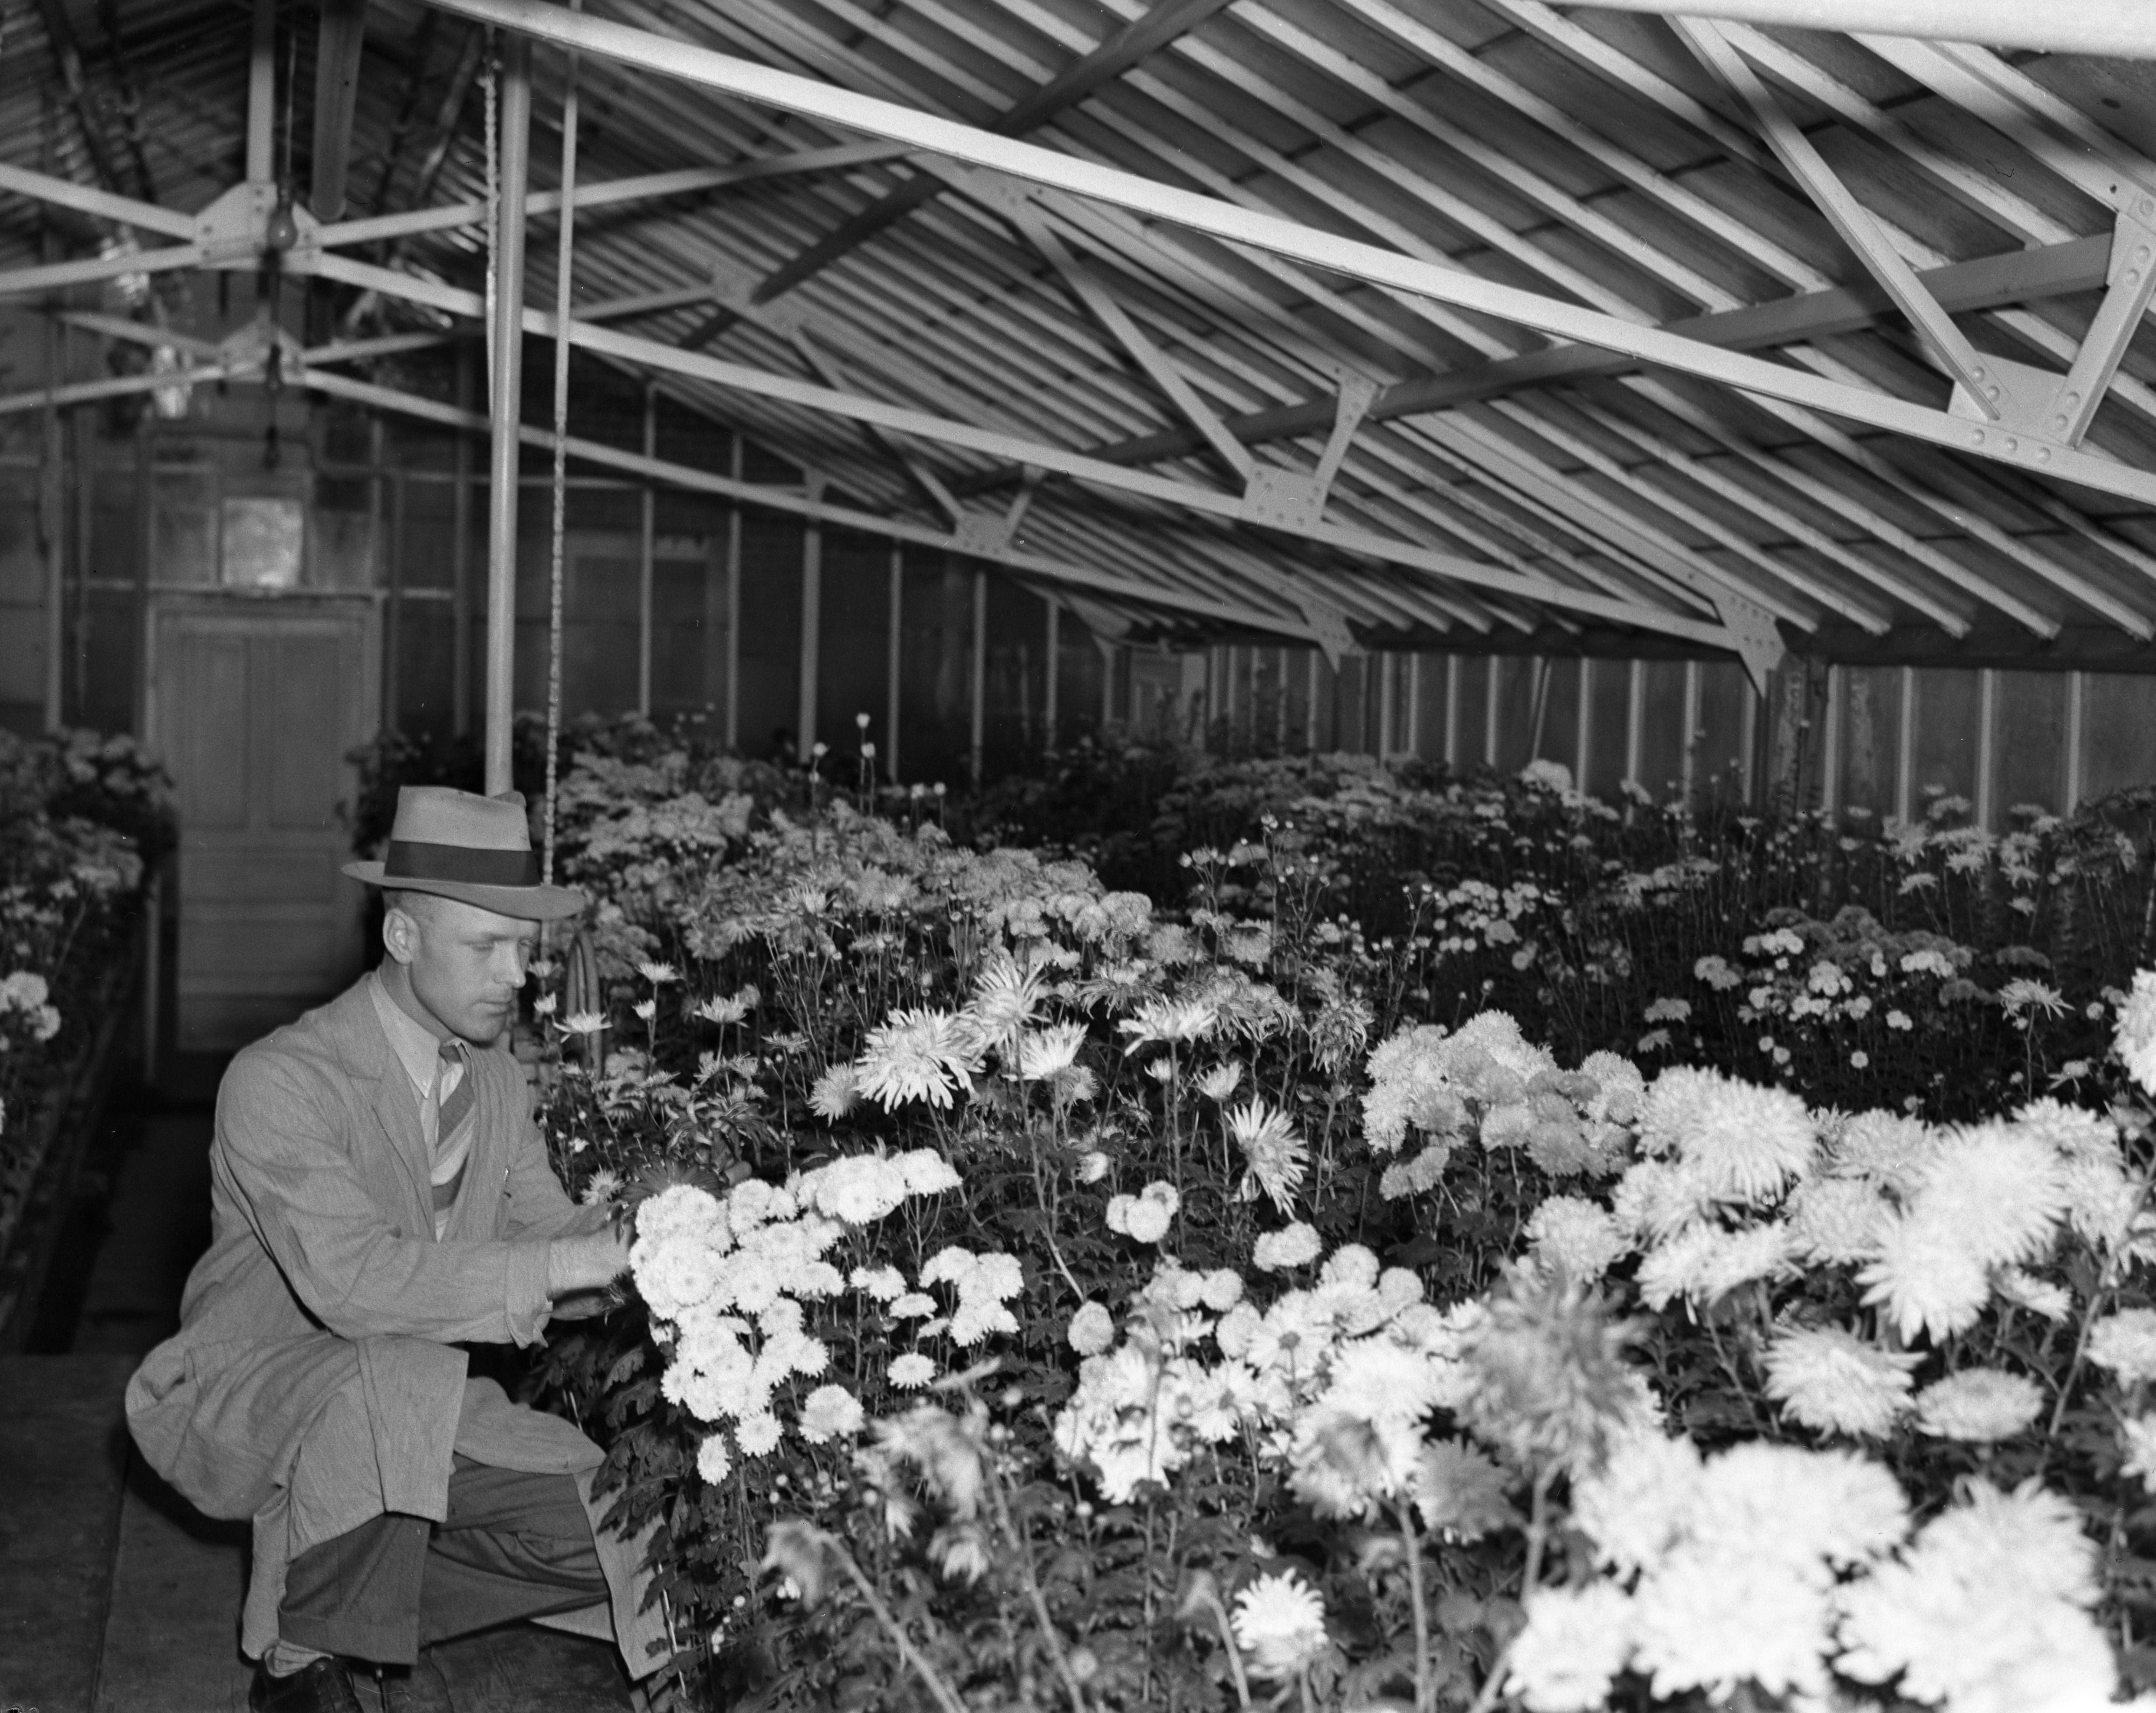 Mums at the University of Michigan Botanical Gardens, November 8, 1937 image